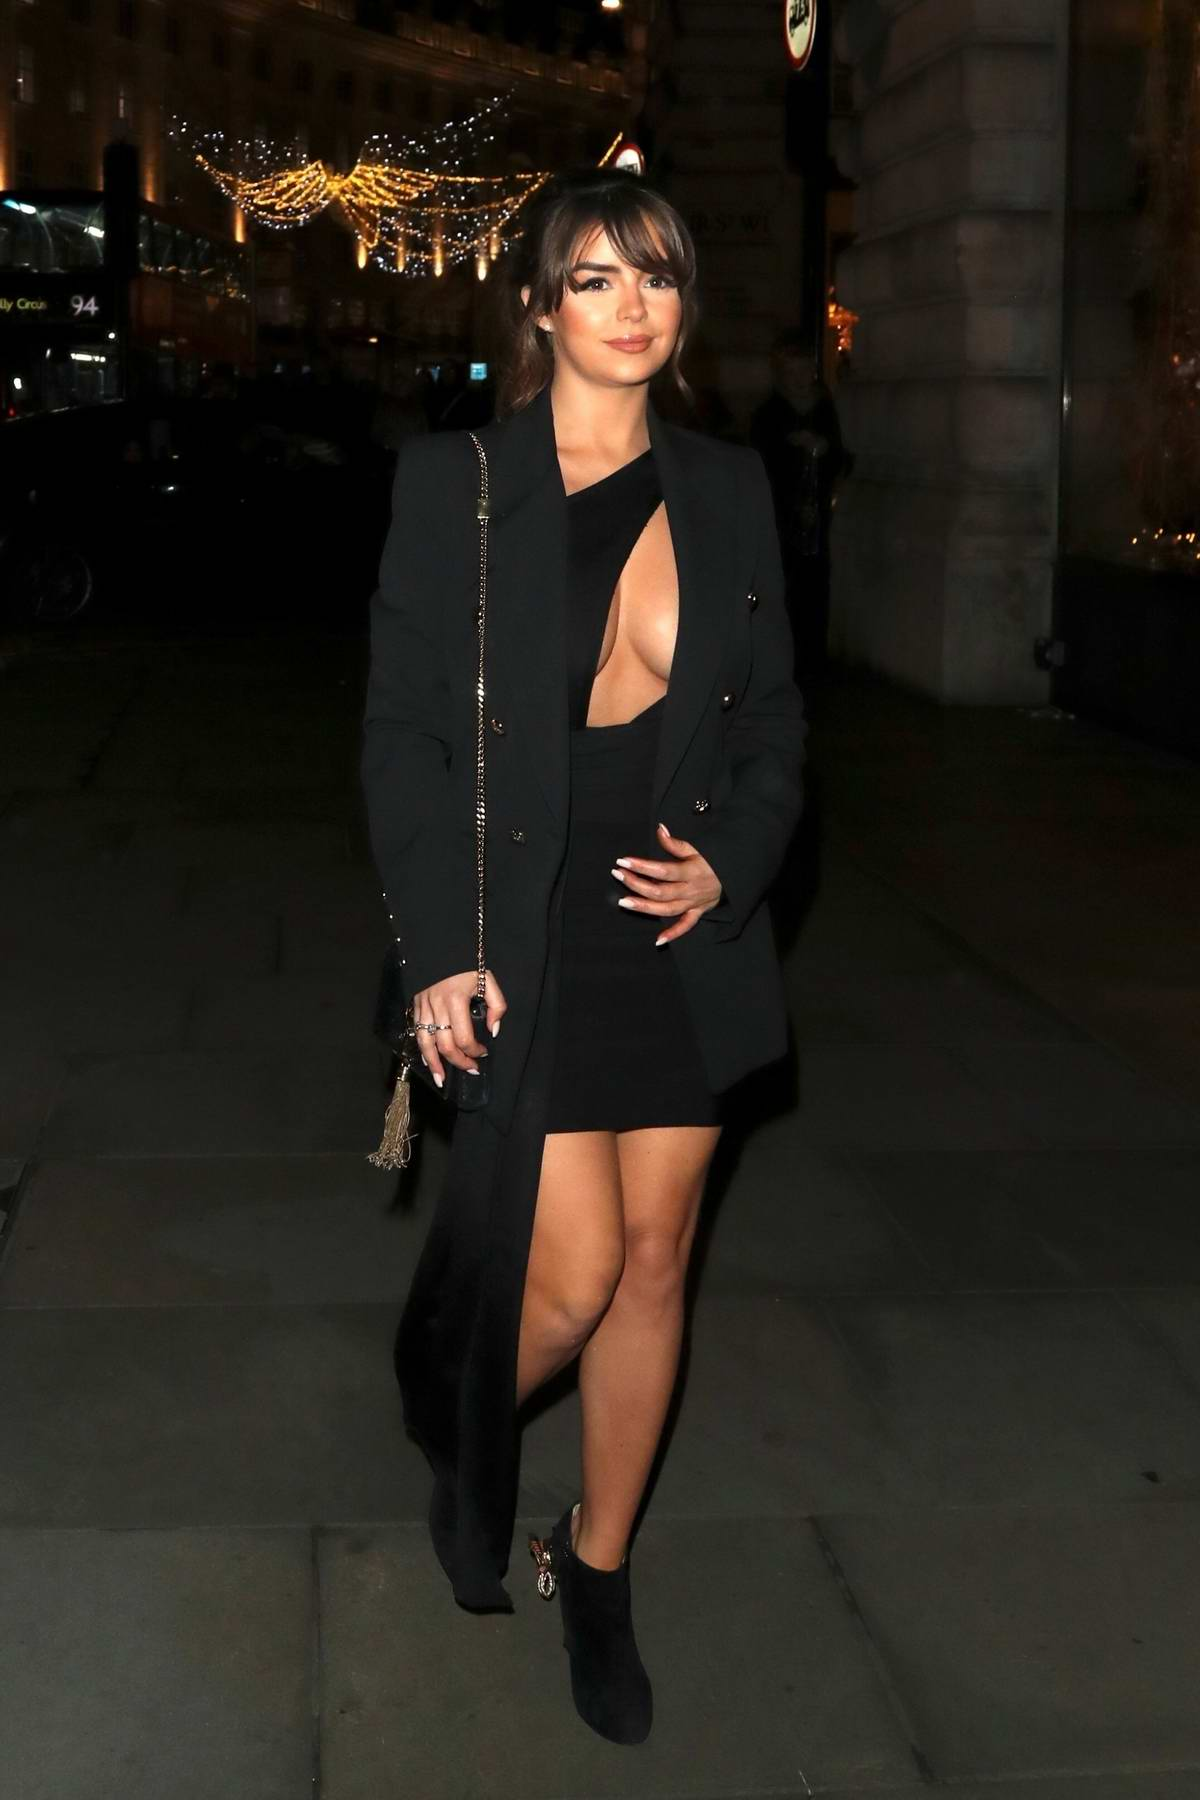 Demi Rose stuns in a black outfit during a night out at Cafe Royal in London, UK